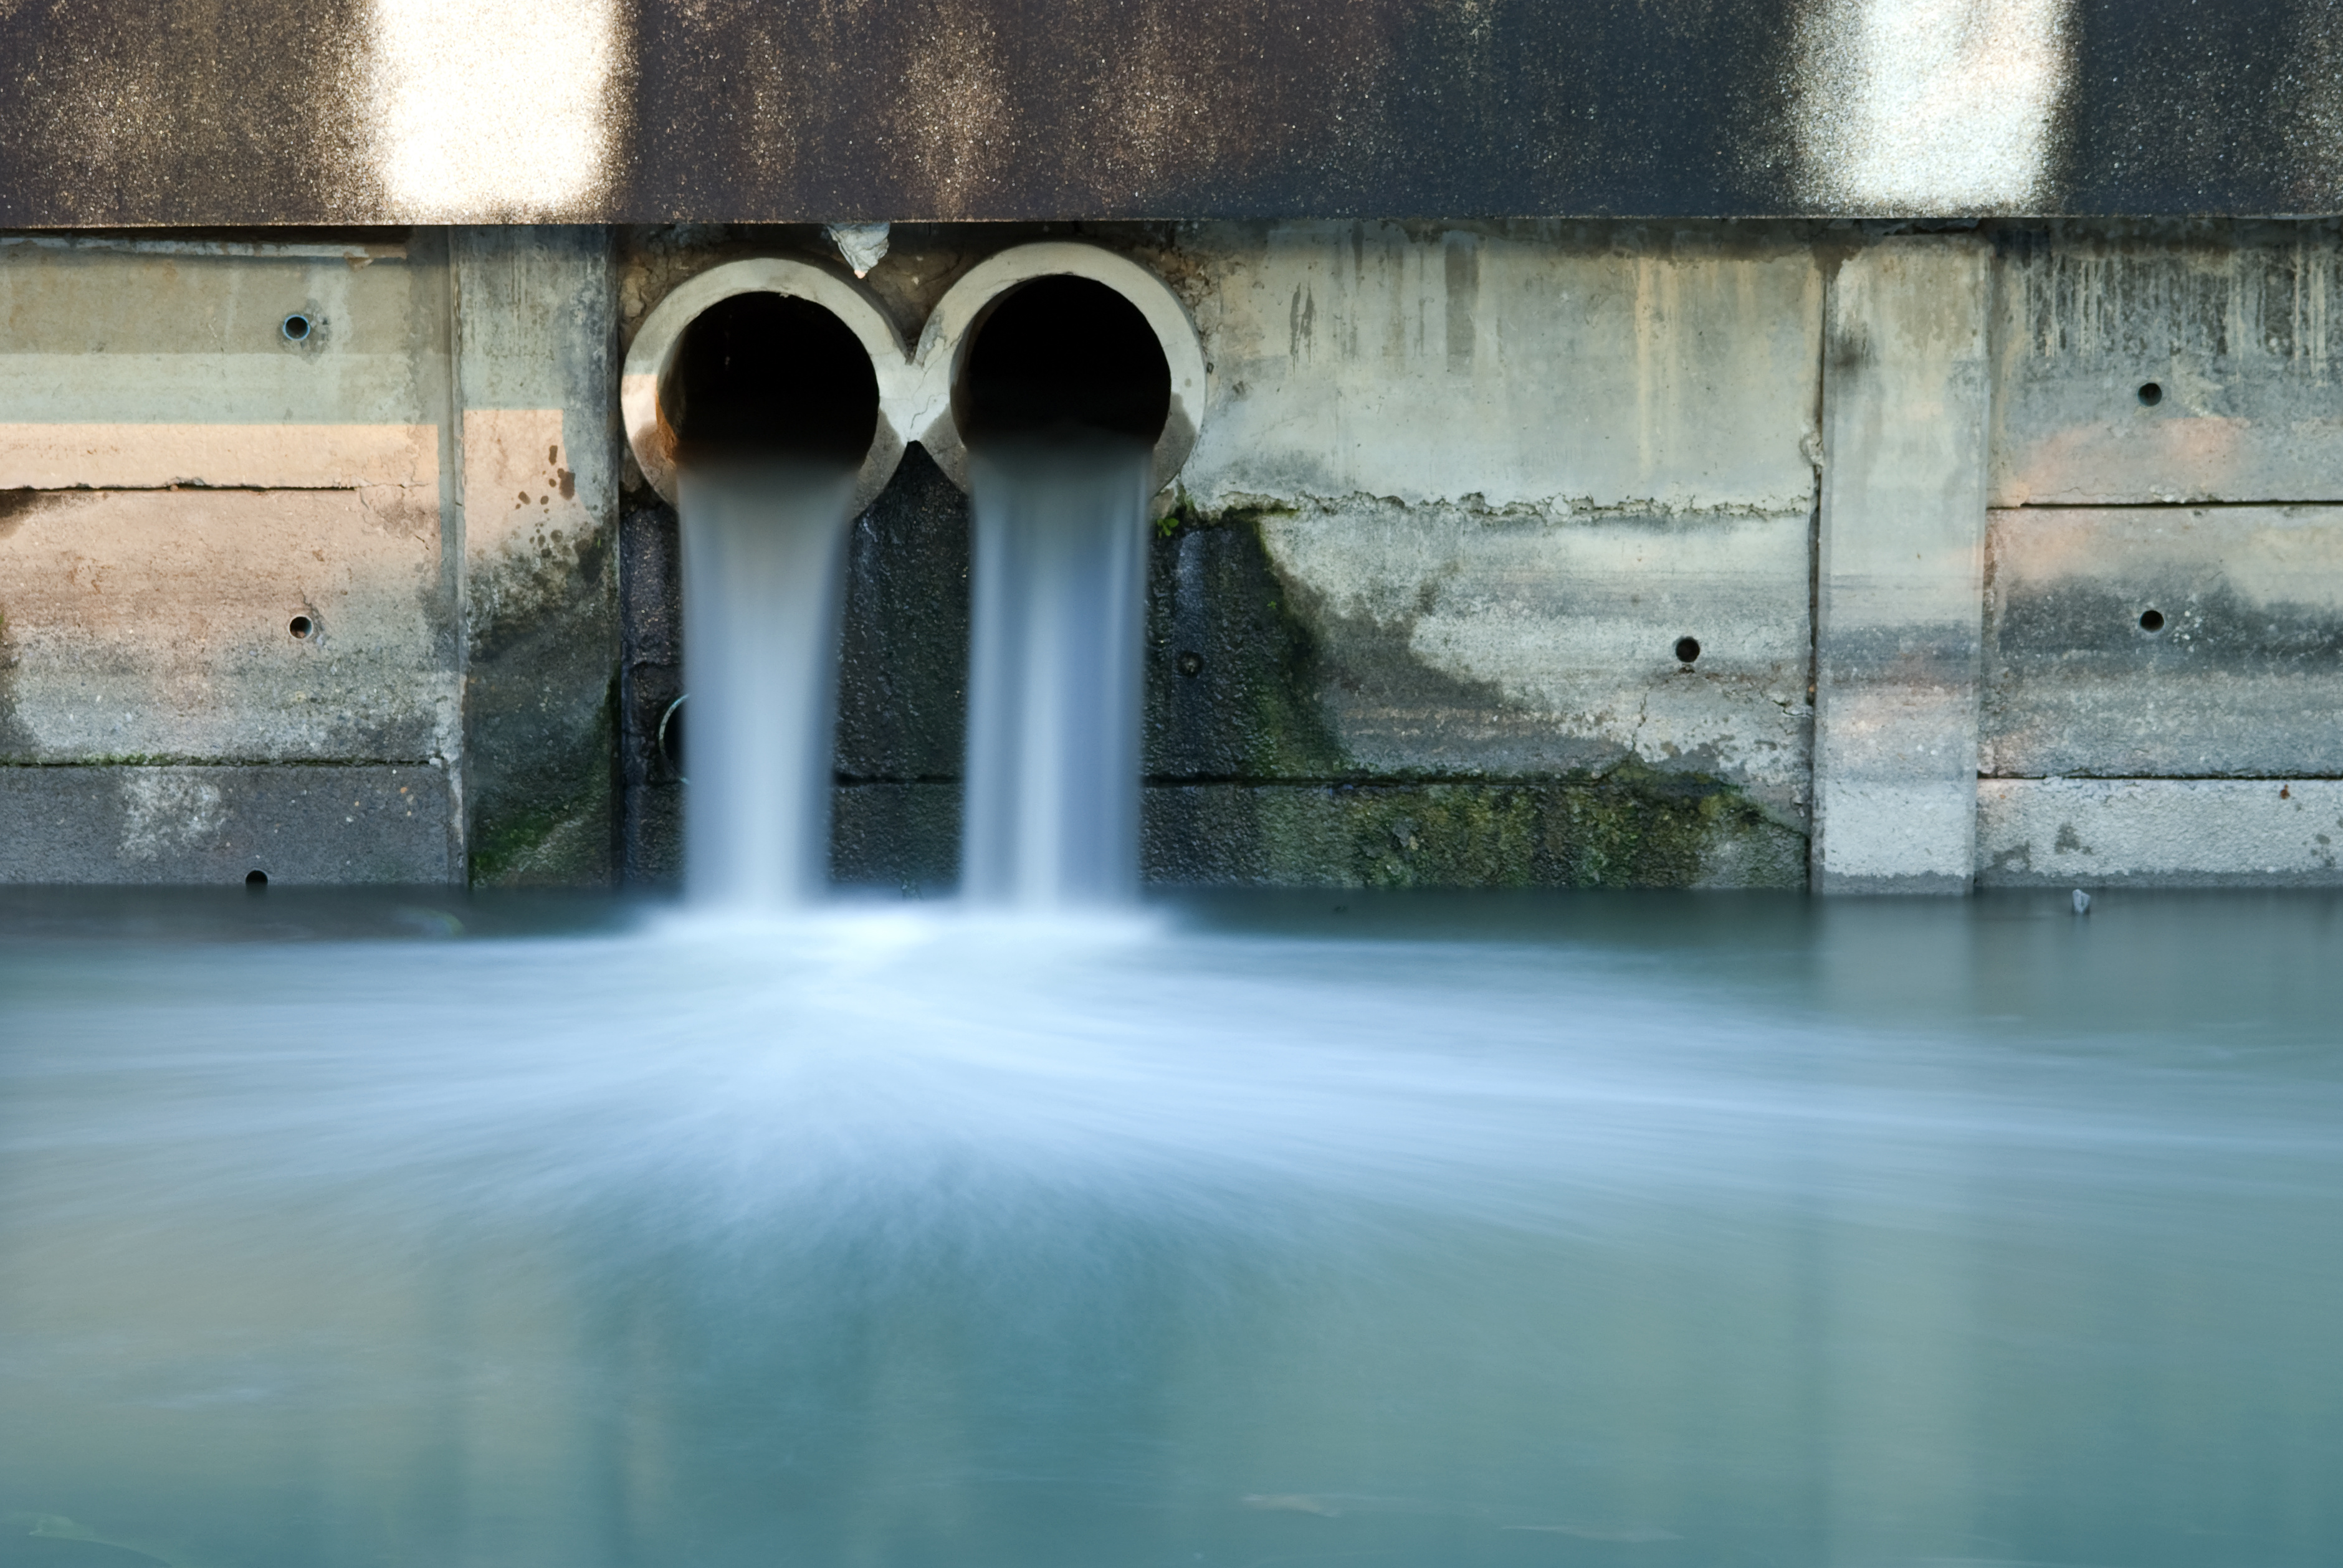 BBI JU AFTERLIFE project: Recovery and valorisation of wastewater fractions for a circular economy